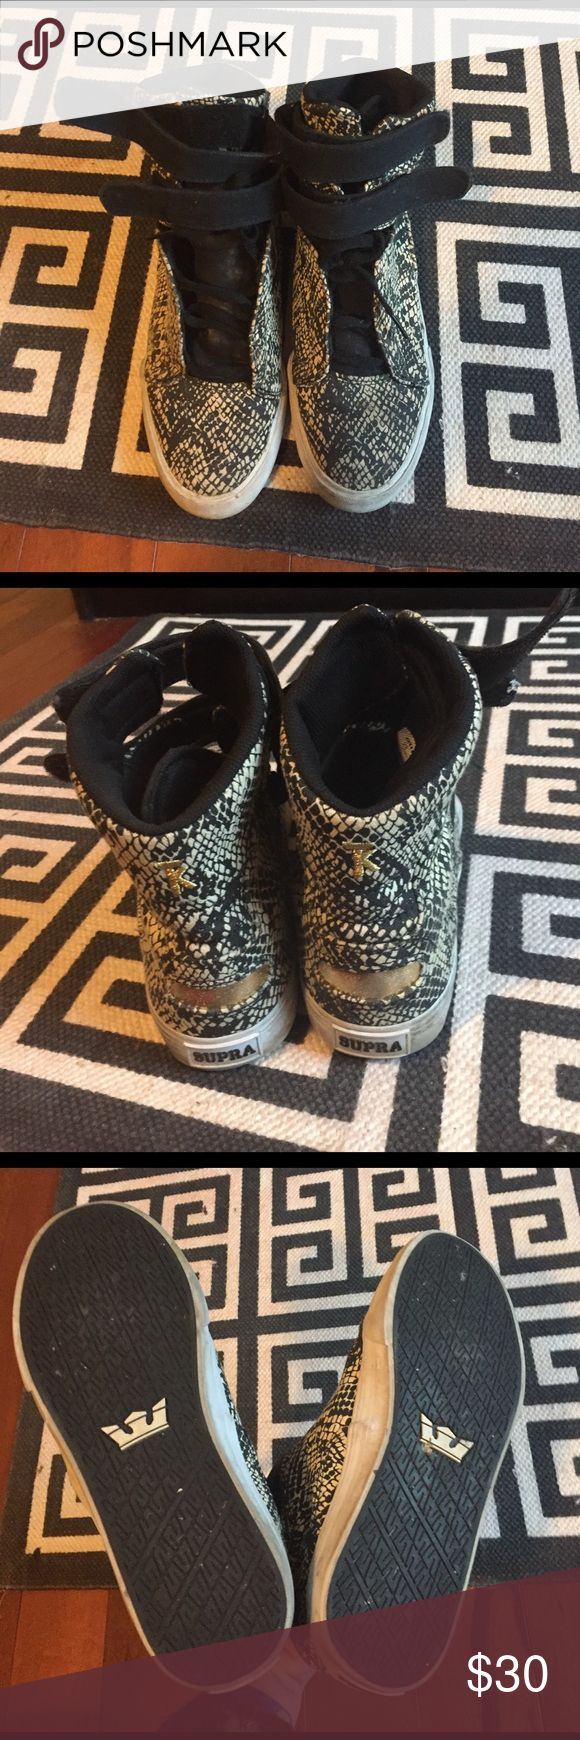 Python print supras Worn with love but a lot of life still in these puppies Supra Shoes Sneakers